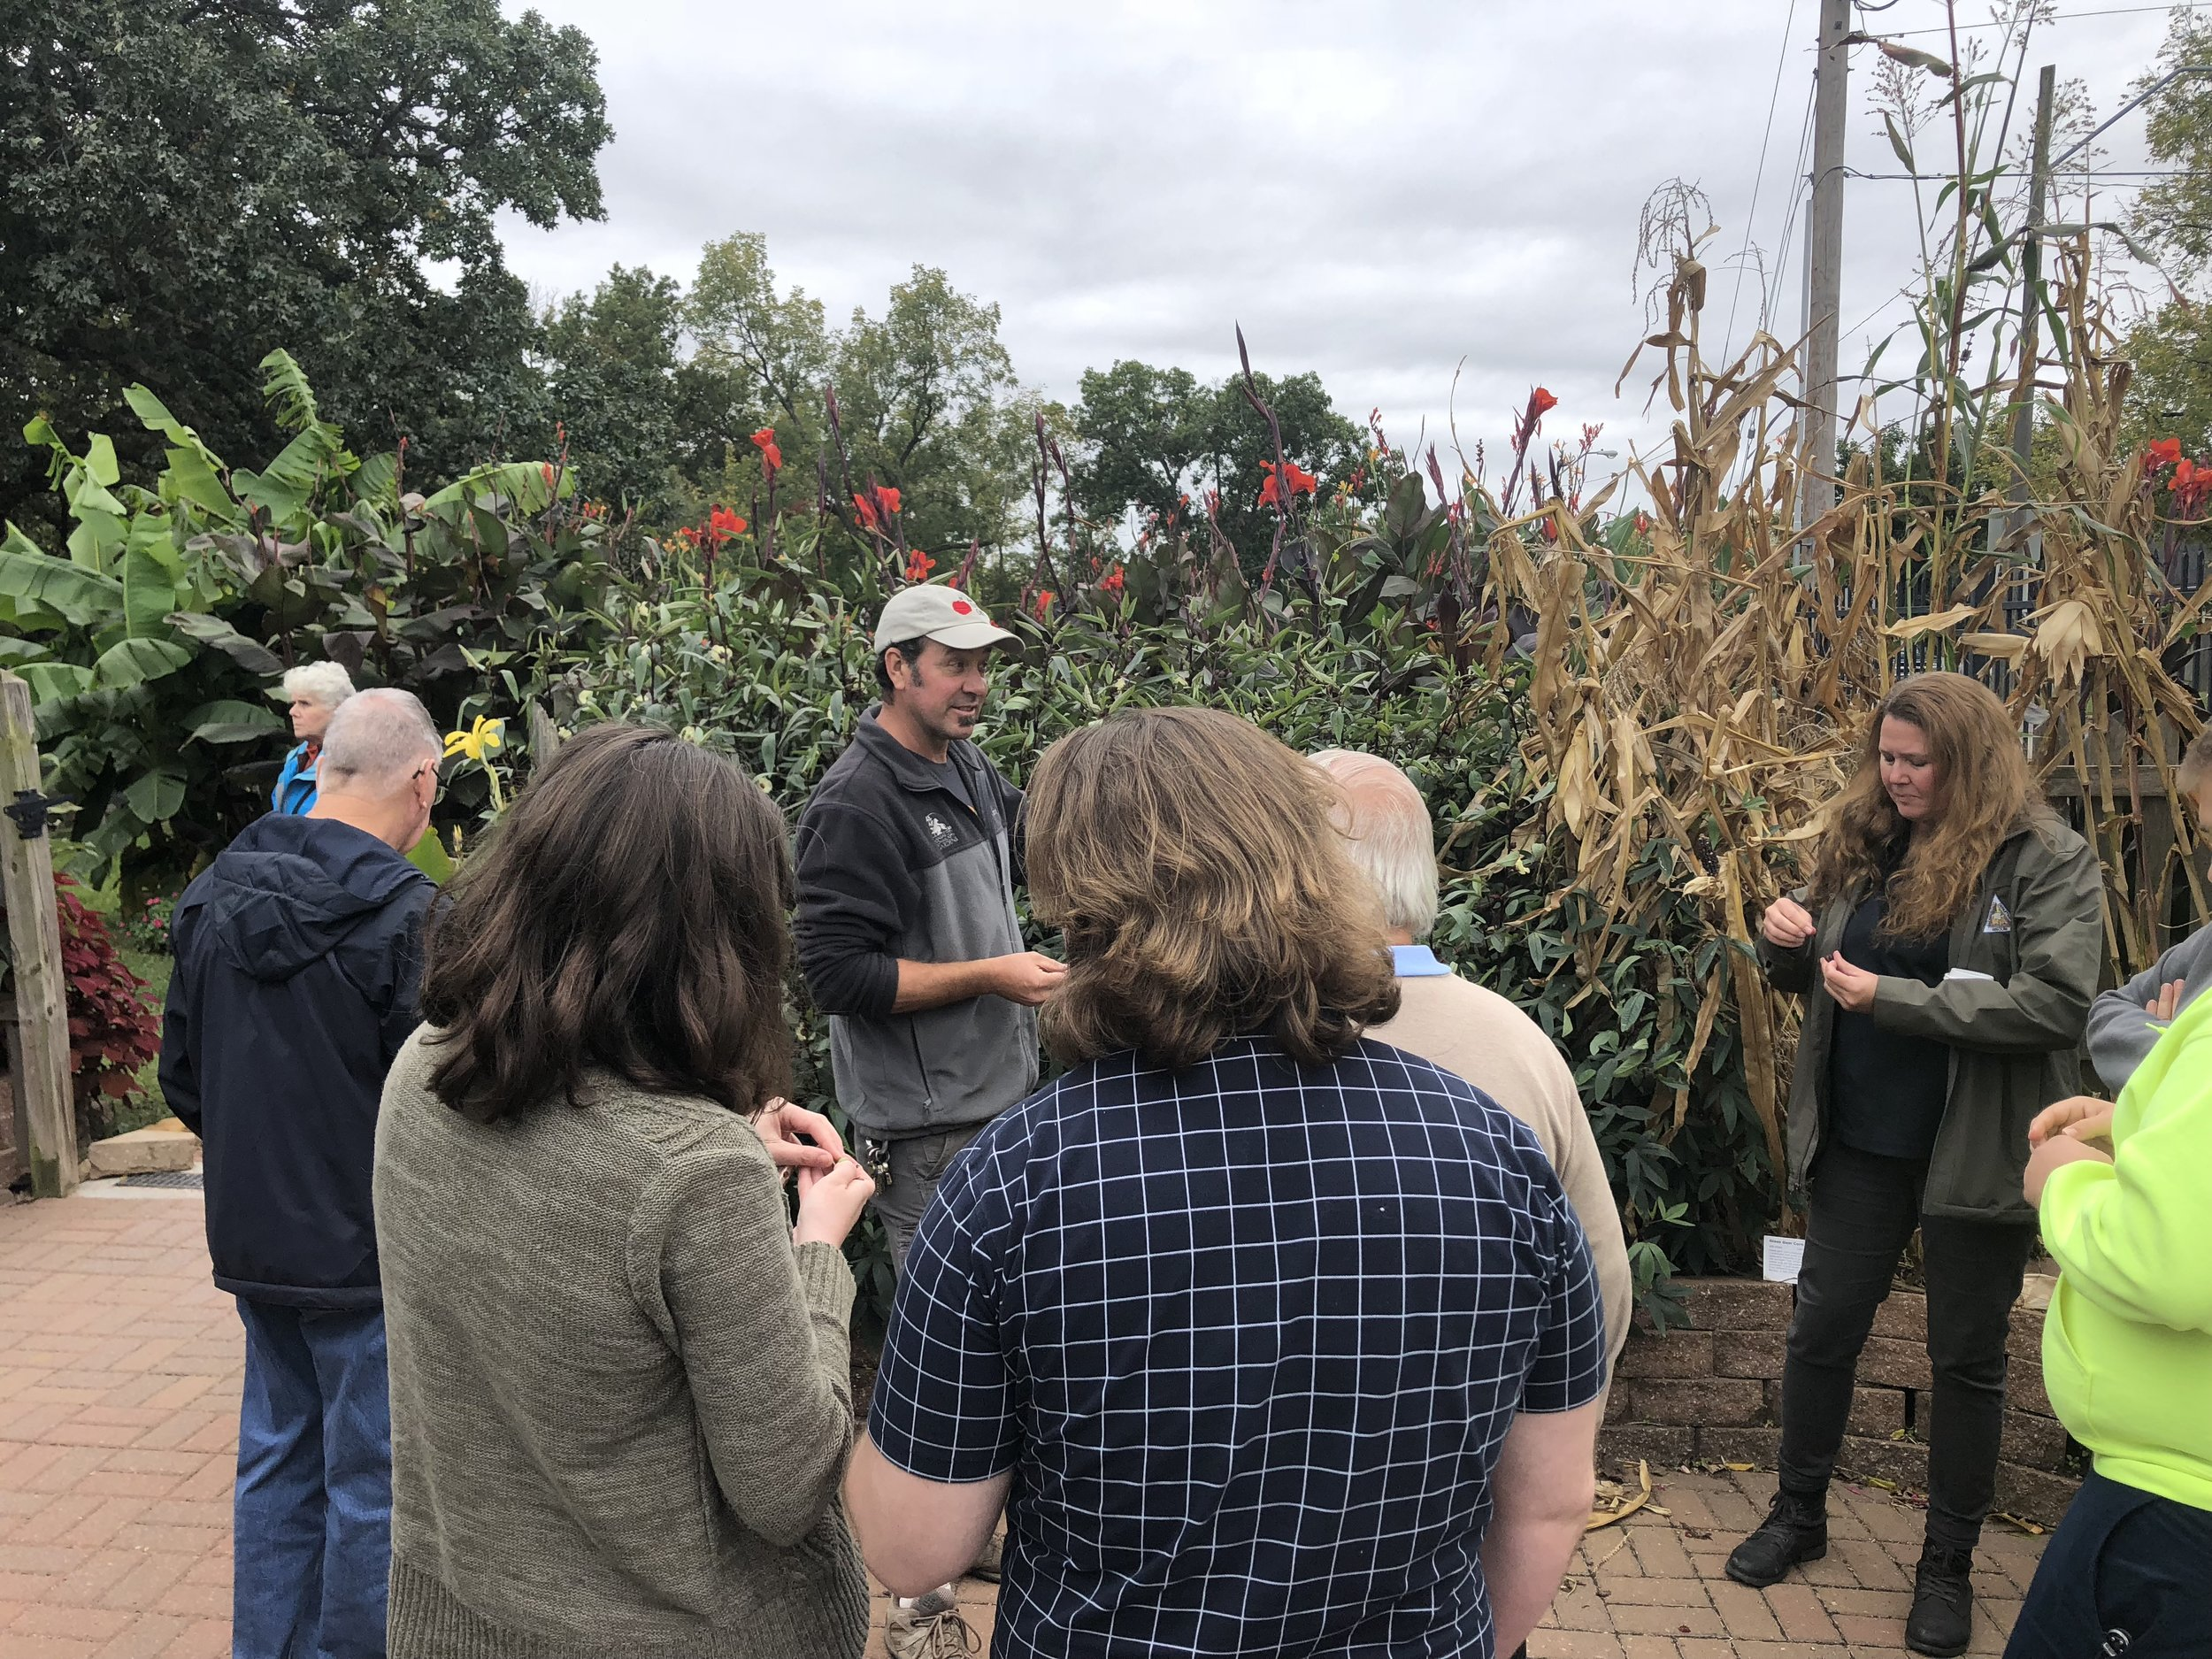 2018 Conference - Forestkeepers toured the Giving Grove, a nonprofit in Kansas City dedicated to improving local food security and strengthening communities by bringing together the resources to develop edible tree gardens.